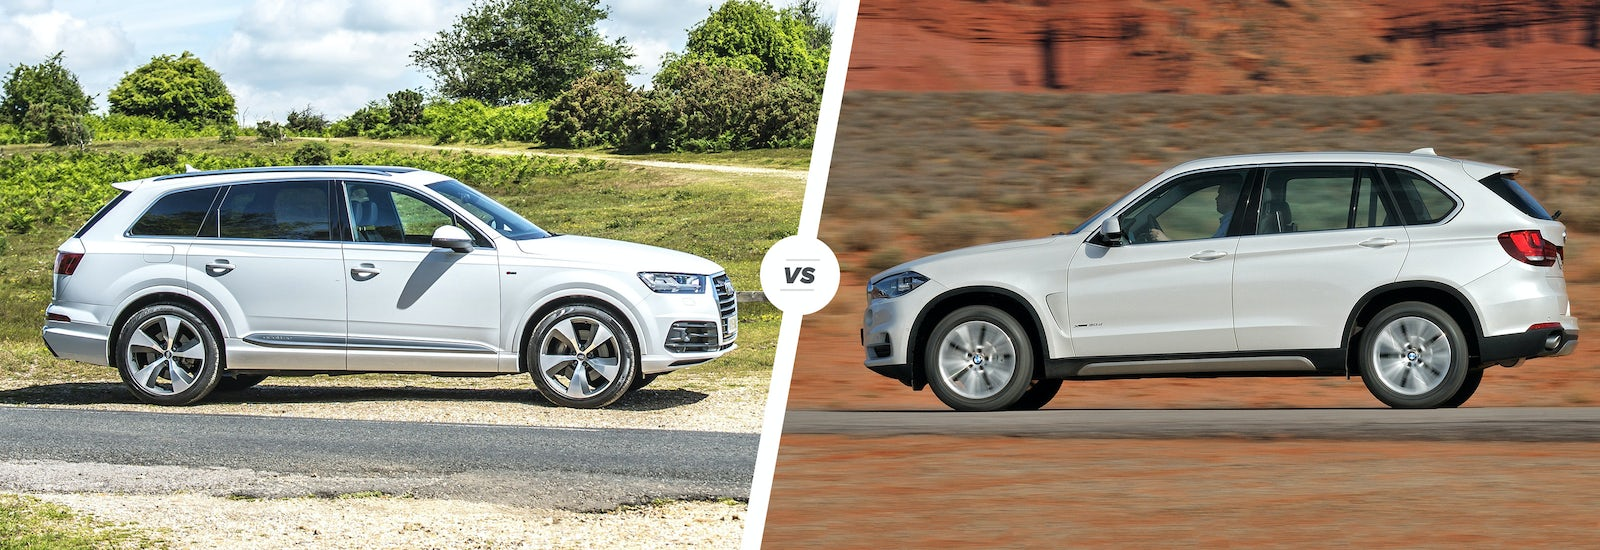 While The Q7 And X5 Are Both Capable Of Light Off Roading Theyre Unashamedly Designed For On Road Use Audis Gone To Great Lengths Improve Driving